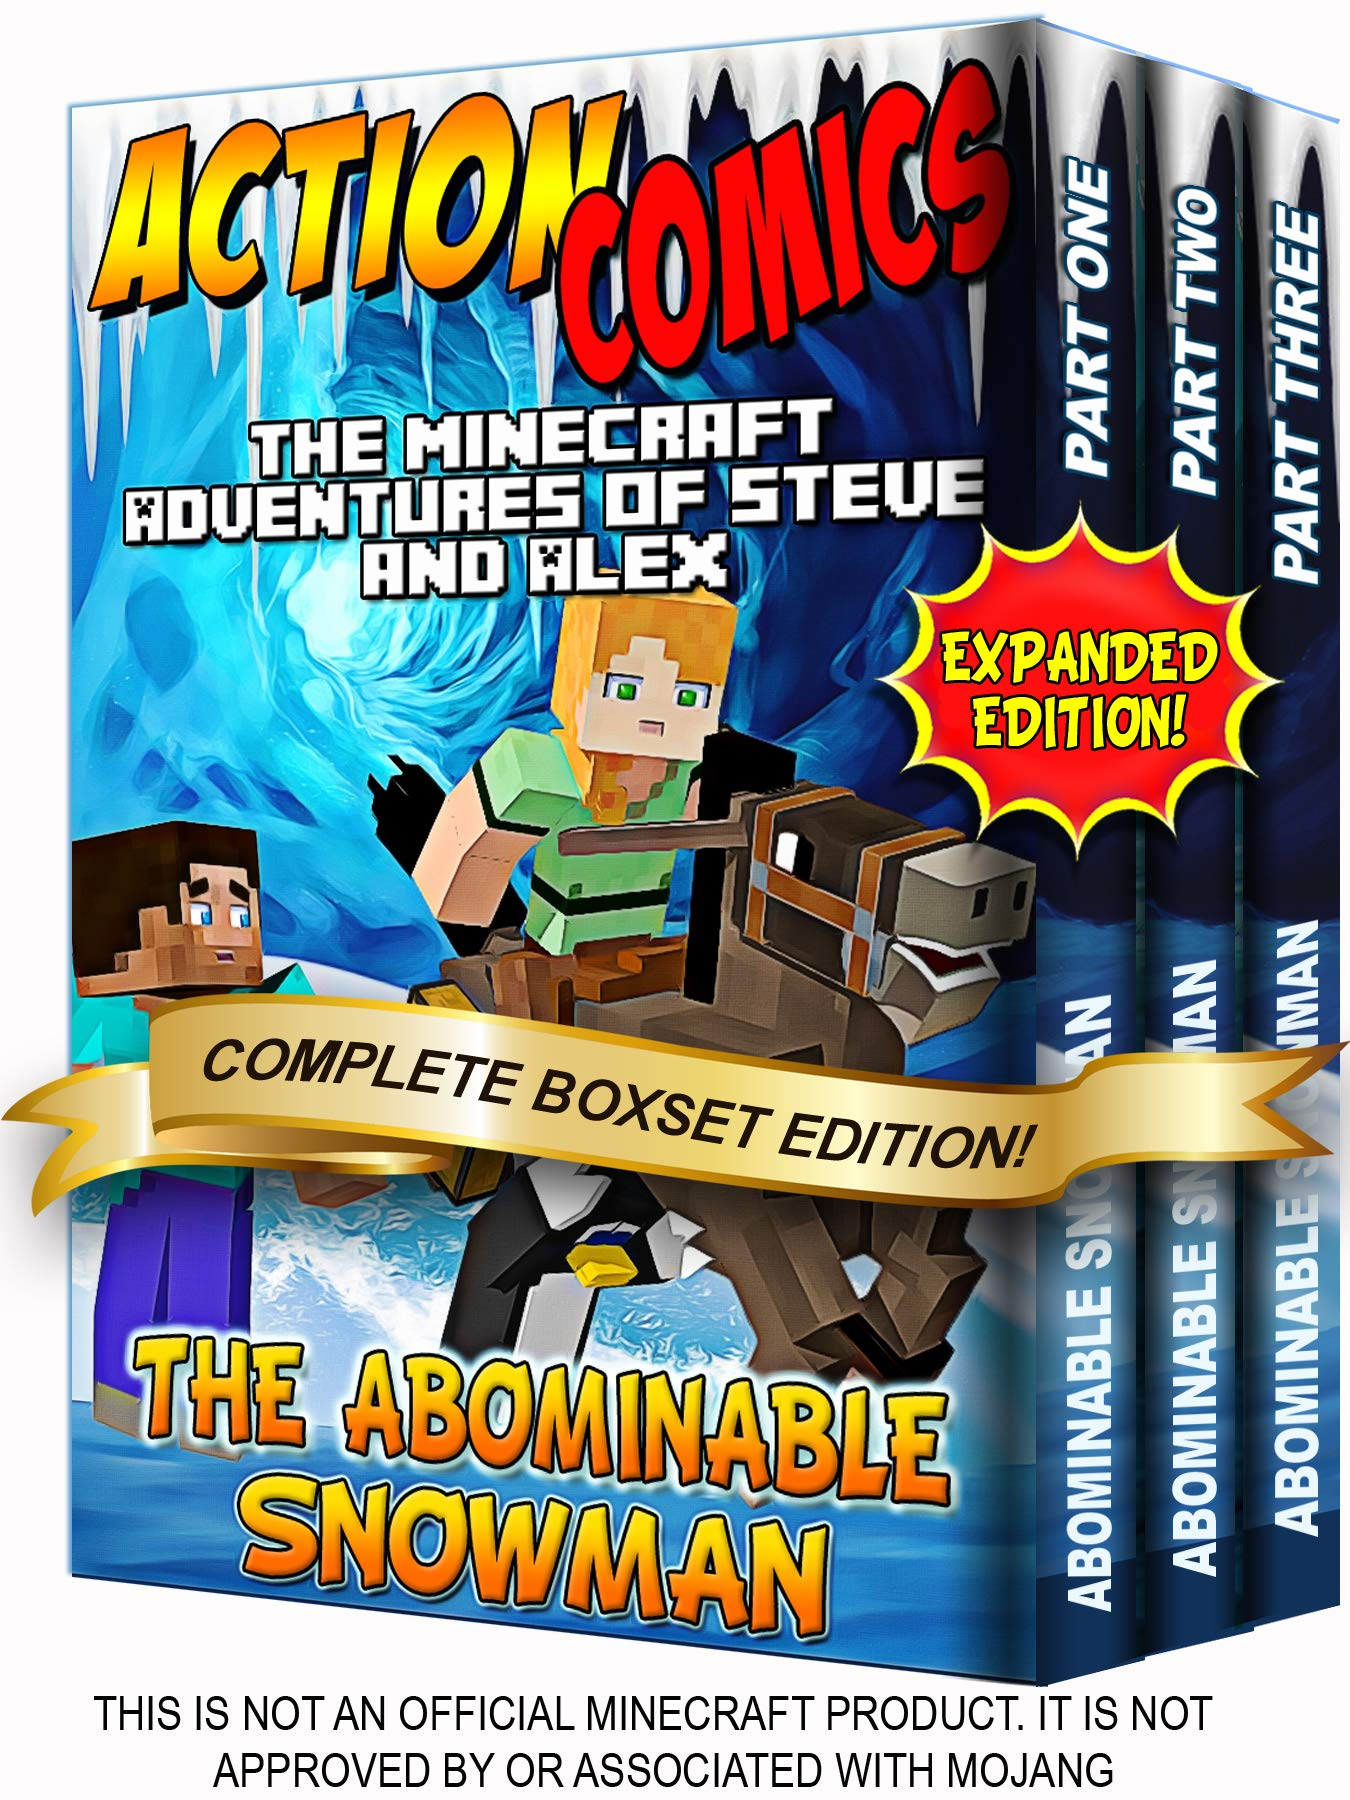 Action Comics Boxset: The Minecraft Adventures of Steve and Alex: The Abominable Snowman - Expanded Boxset Edition (Parts 1 - 3) (Minecraft Steve and Alex Adventures Boxset Series Book 14)